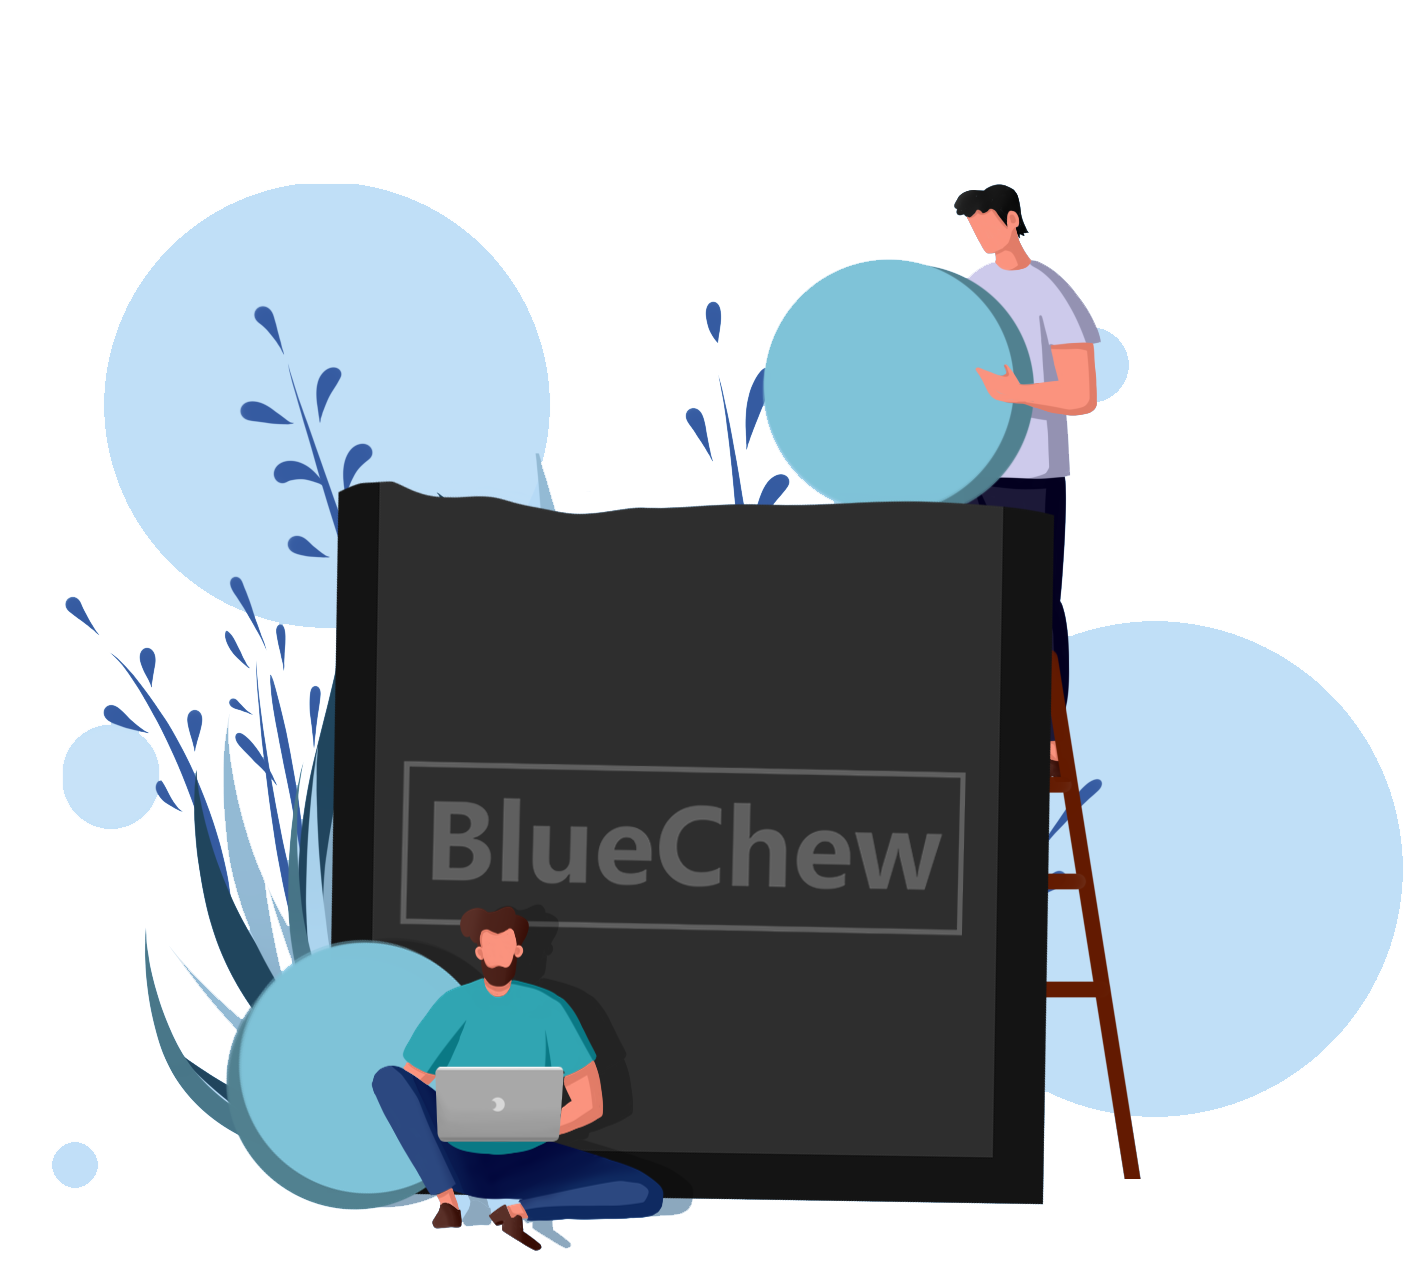 BlueChew Drug Guide